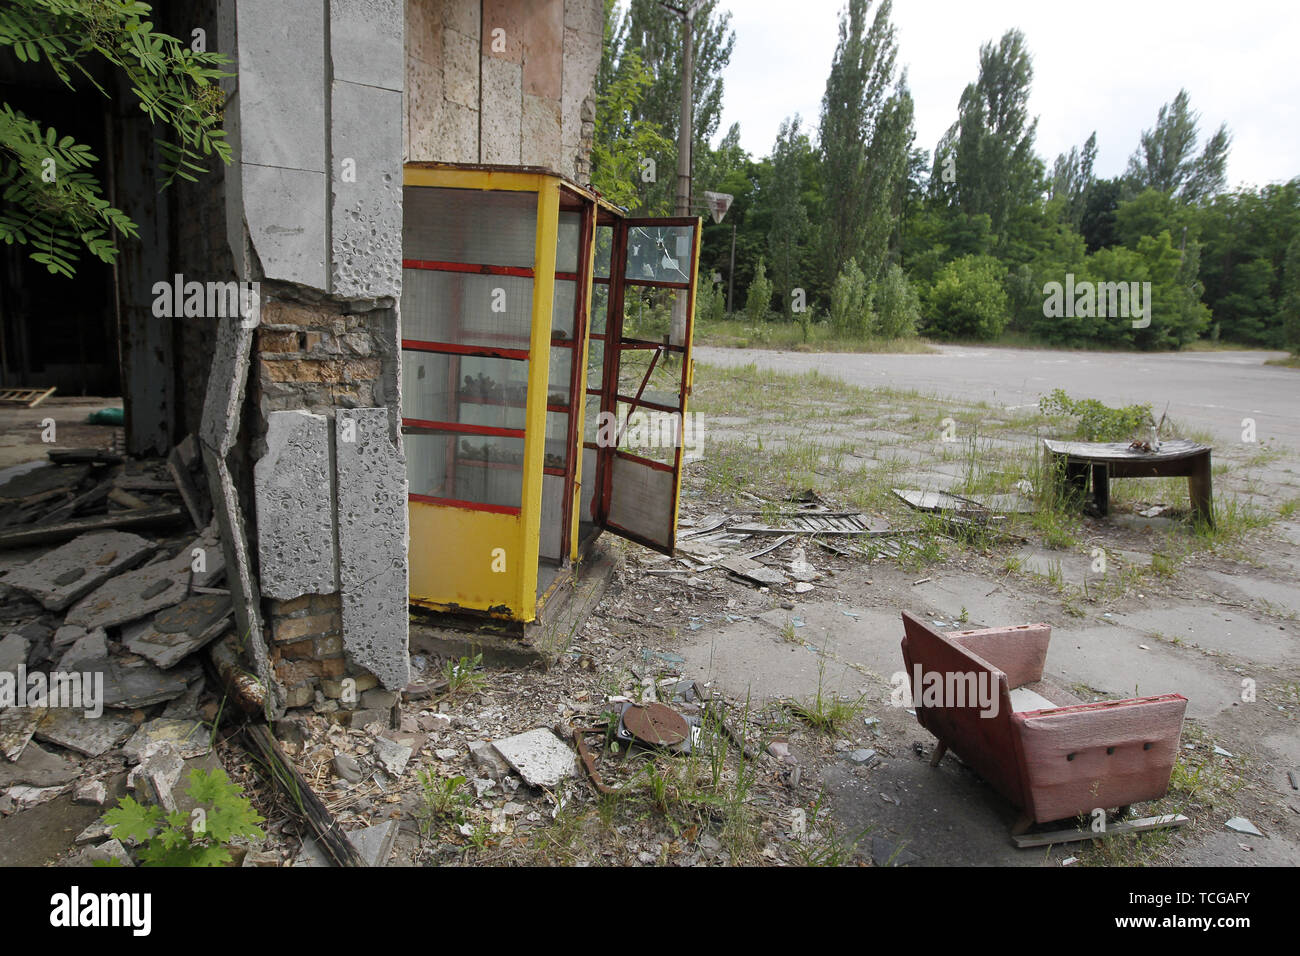 June 7, 2019 - Kiev, Ukraine - A view in abandoned city of Pripyat in Chernobyl, Ukraine, on 7 June 2019. The success of a U.S. HBO's television miniseries 'Chernobyl' has renewed interest around the world on Ukraine's 1986 nuclear disaster. Tourism to Chernobyl has spiked 40% following the debut of the HBO series in May, tour agencies reported . Last April Ukrainians marked the 33rd anniversary of the Chernobyl disaster in then-Soviet Ukraine, caused by a botched safety test in the fourth reactor of the atomic plant that sent clouds of nuclear material across much of Europe. (Credit Image: © - Stock Image